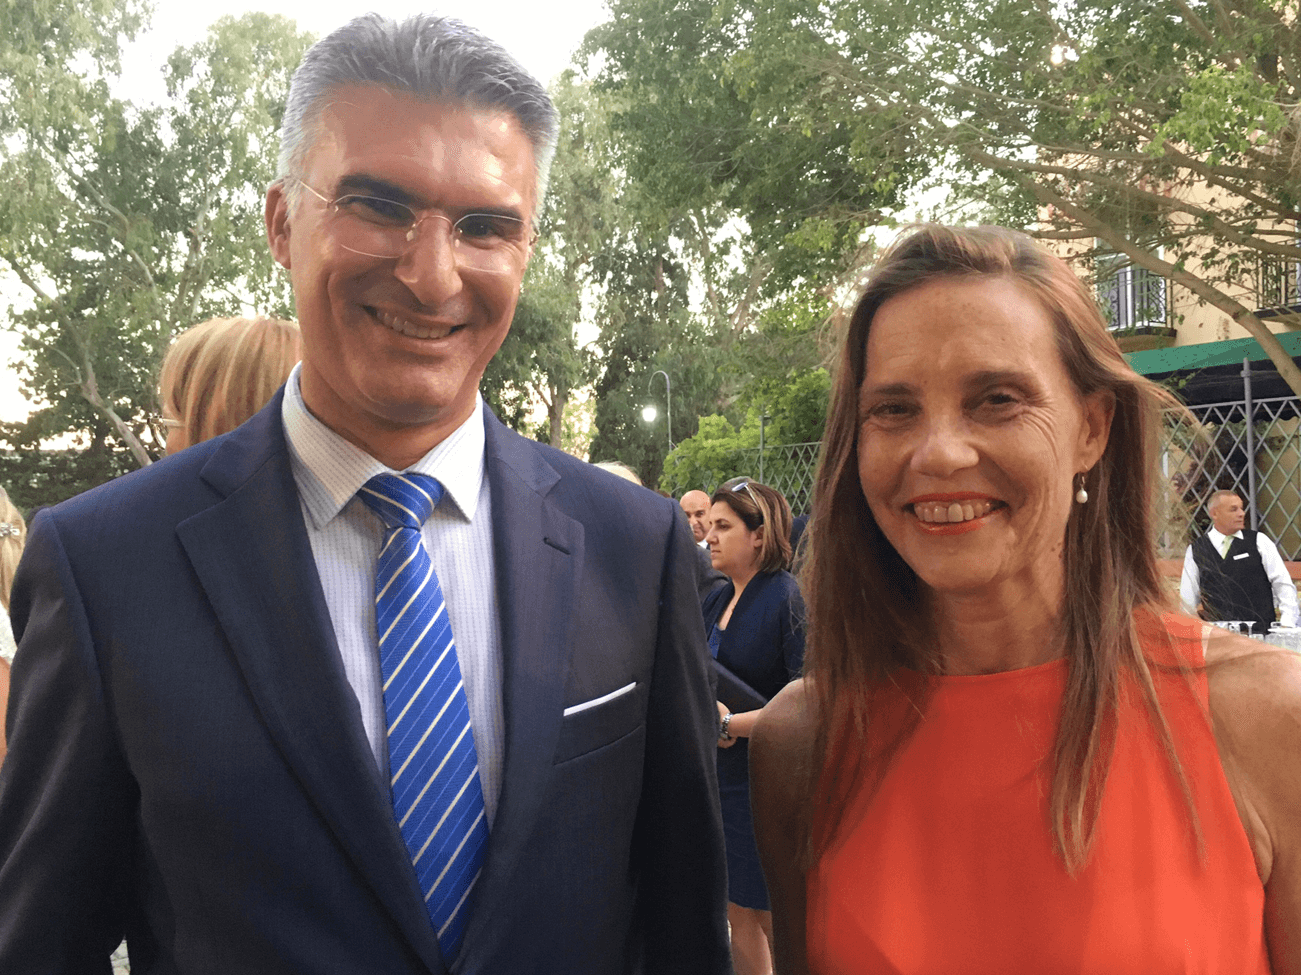 Australian High Commissioner to Malta Julienne Hince with Malta's Foreign Minister Mr Carmelo Abela.